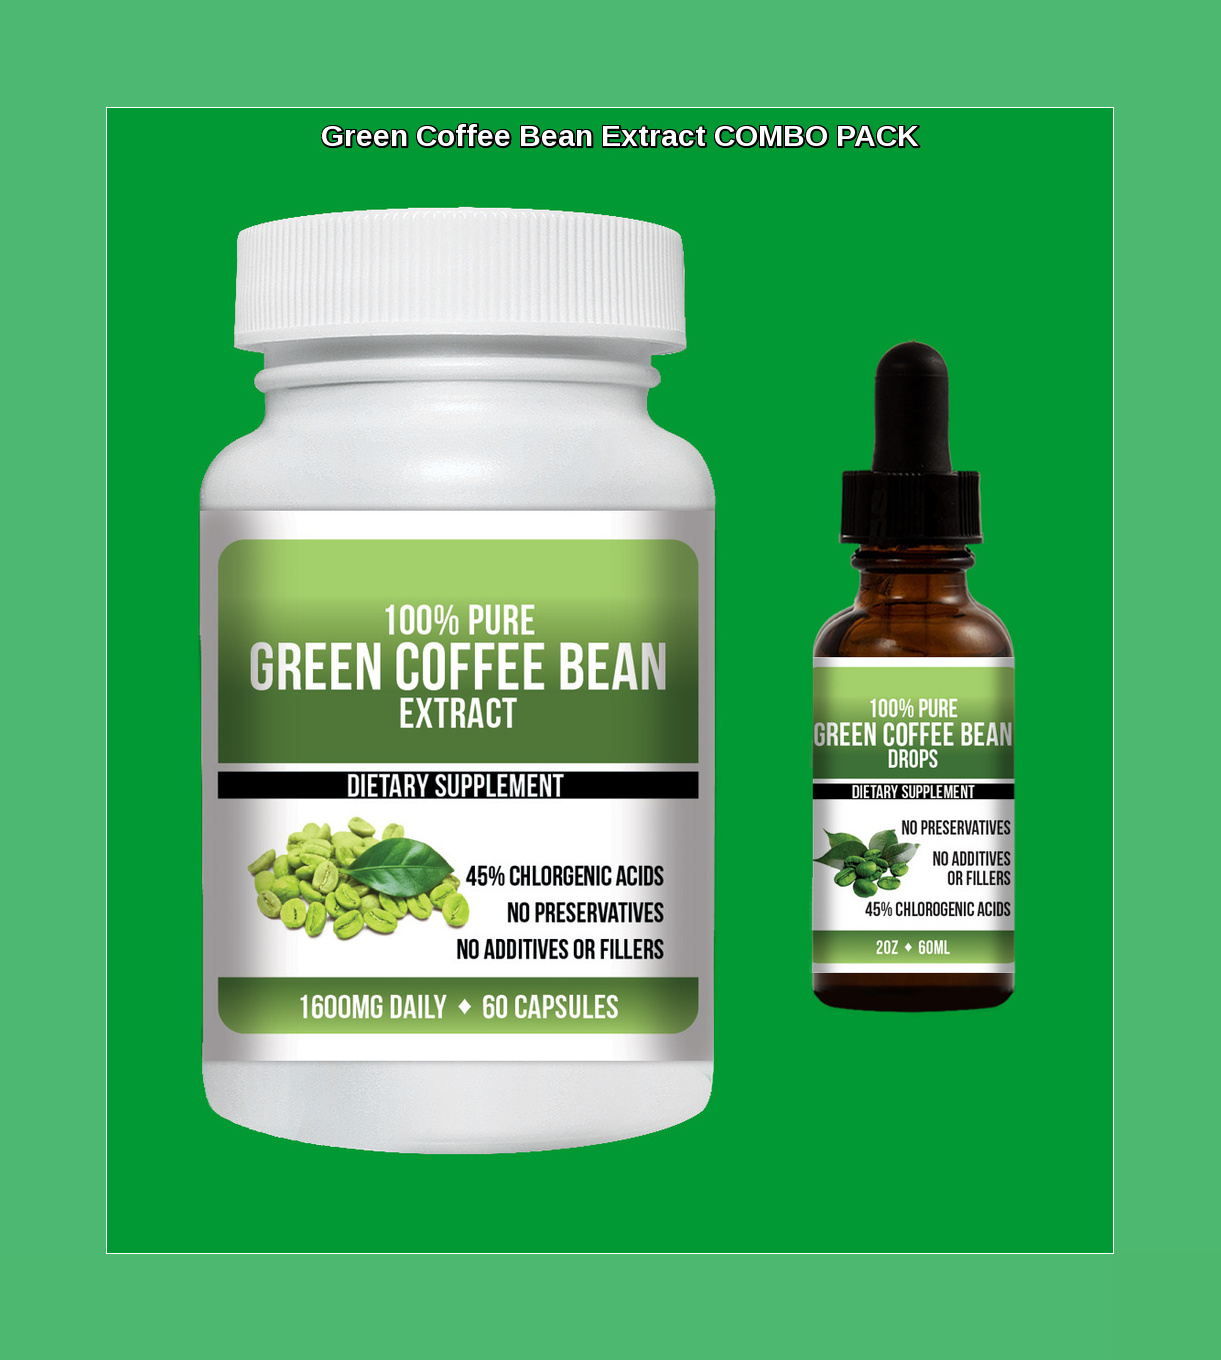 Green Coffee Bean Extract 45 Chlorogenic Acid Drops Weight Loss